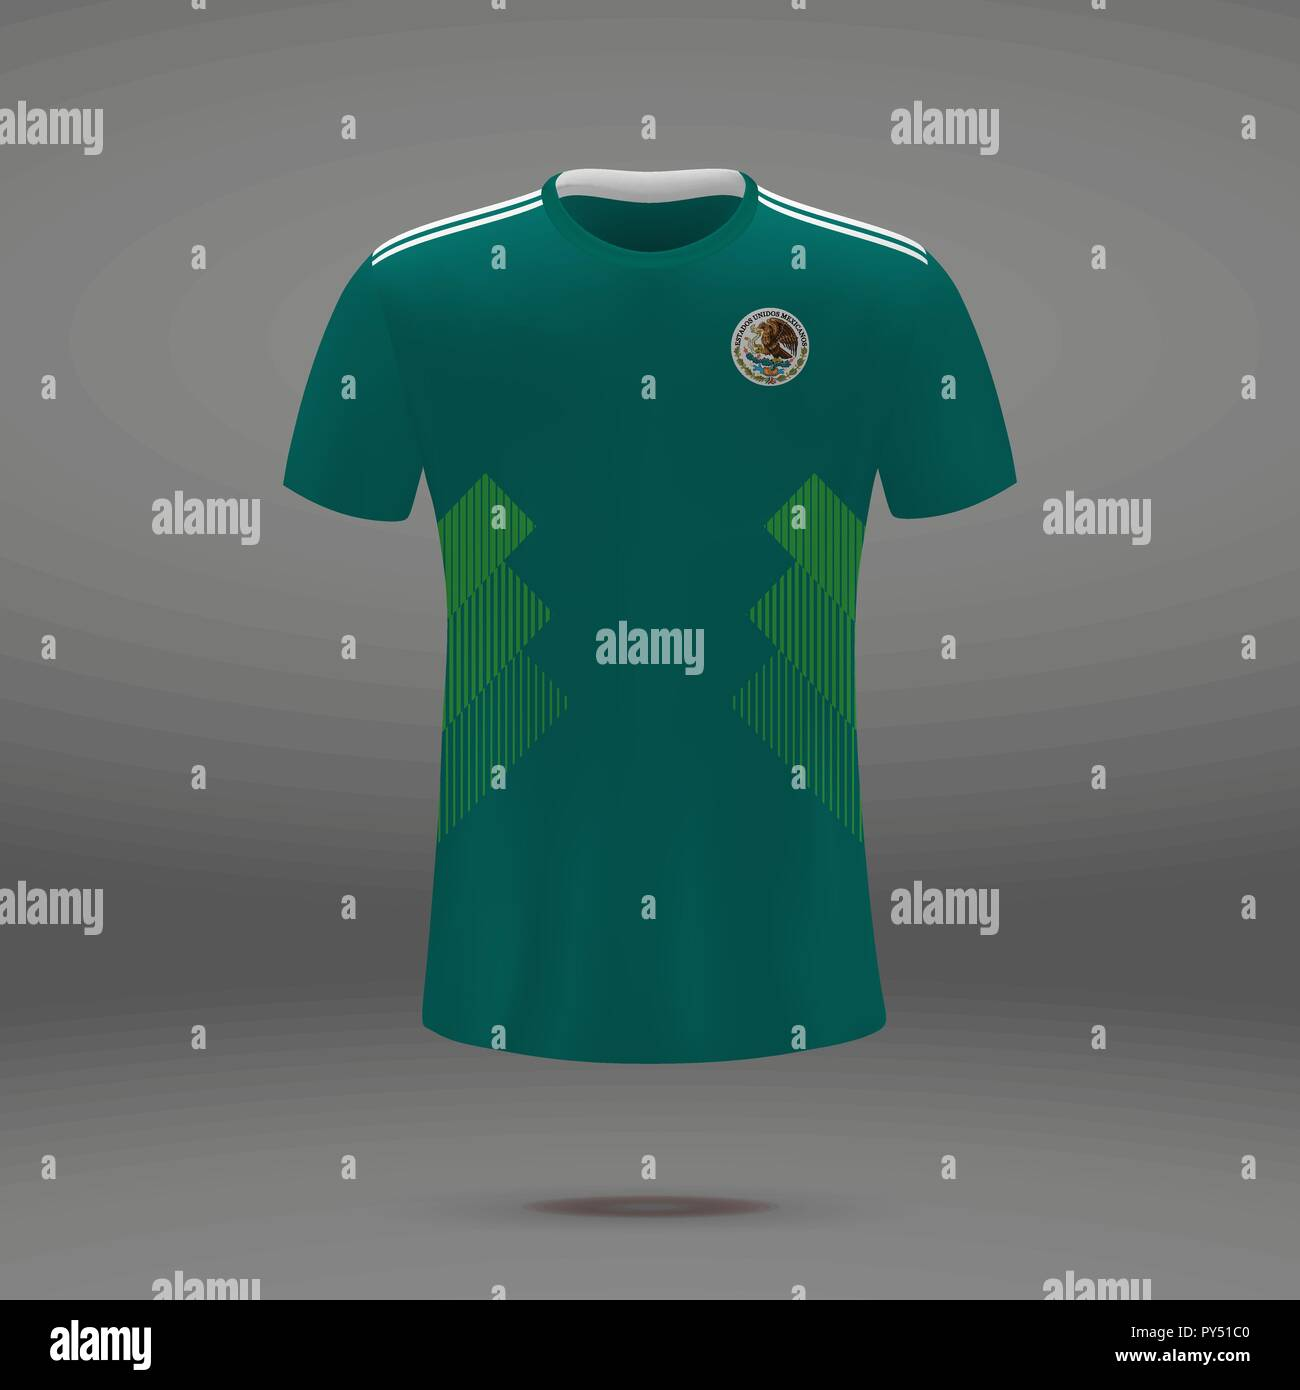 816ff947b14 football kit of Mexico 2018, t-shirt template for soccer jersey. Vector  illustration